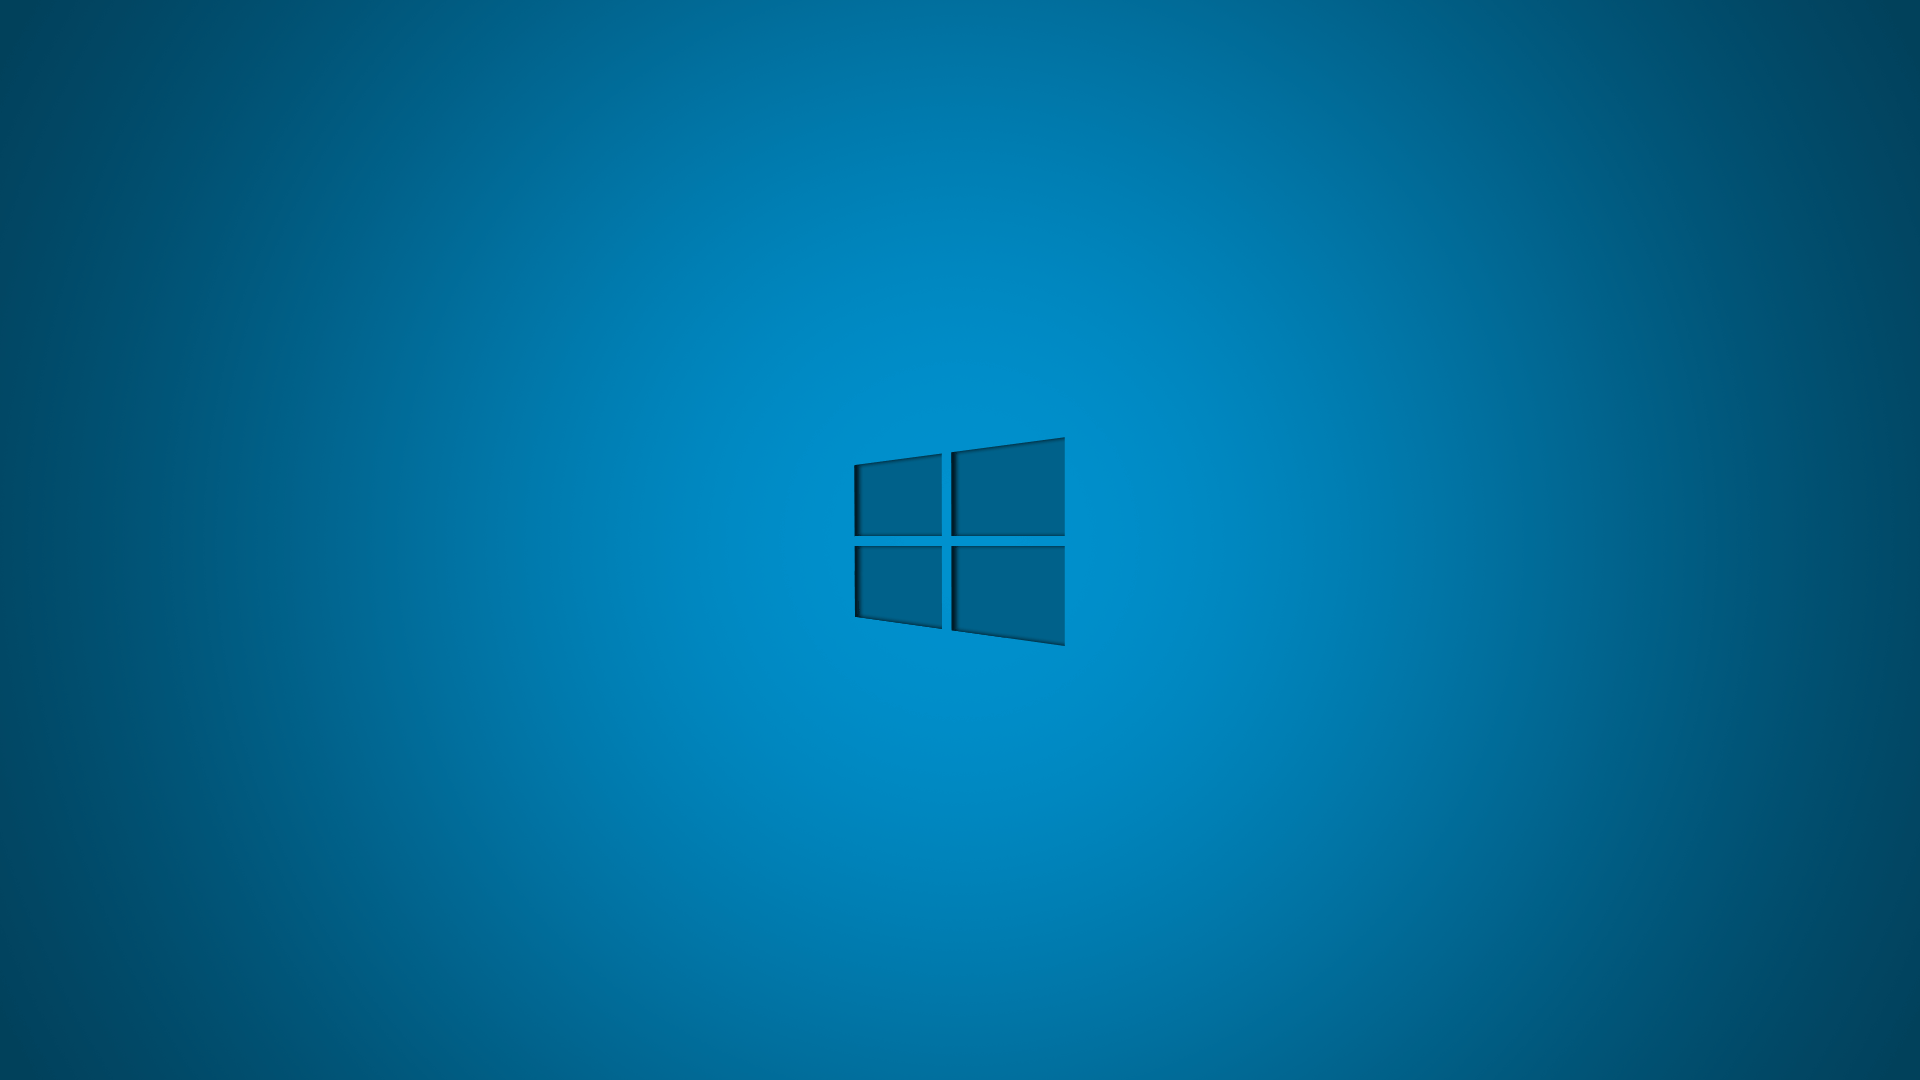 Windows 8 wallpapers 1080p wallpaper cave for Window background